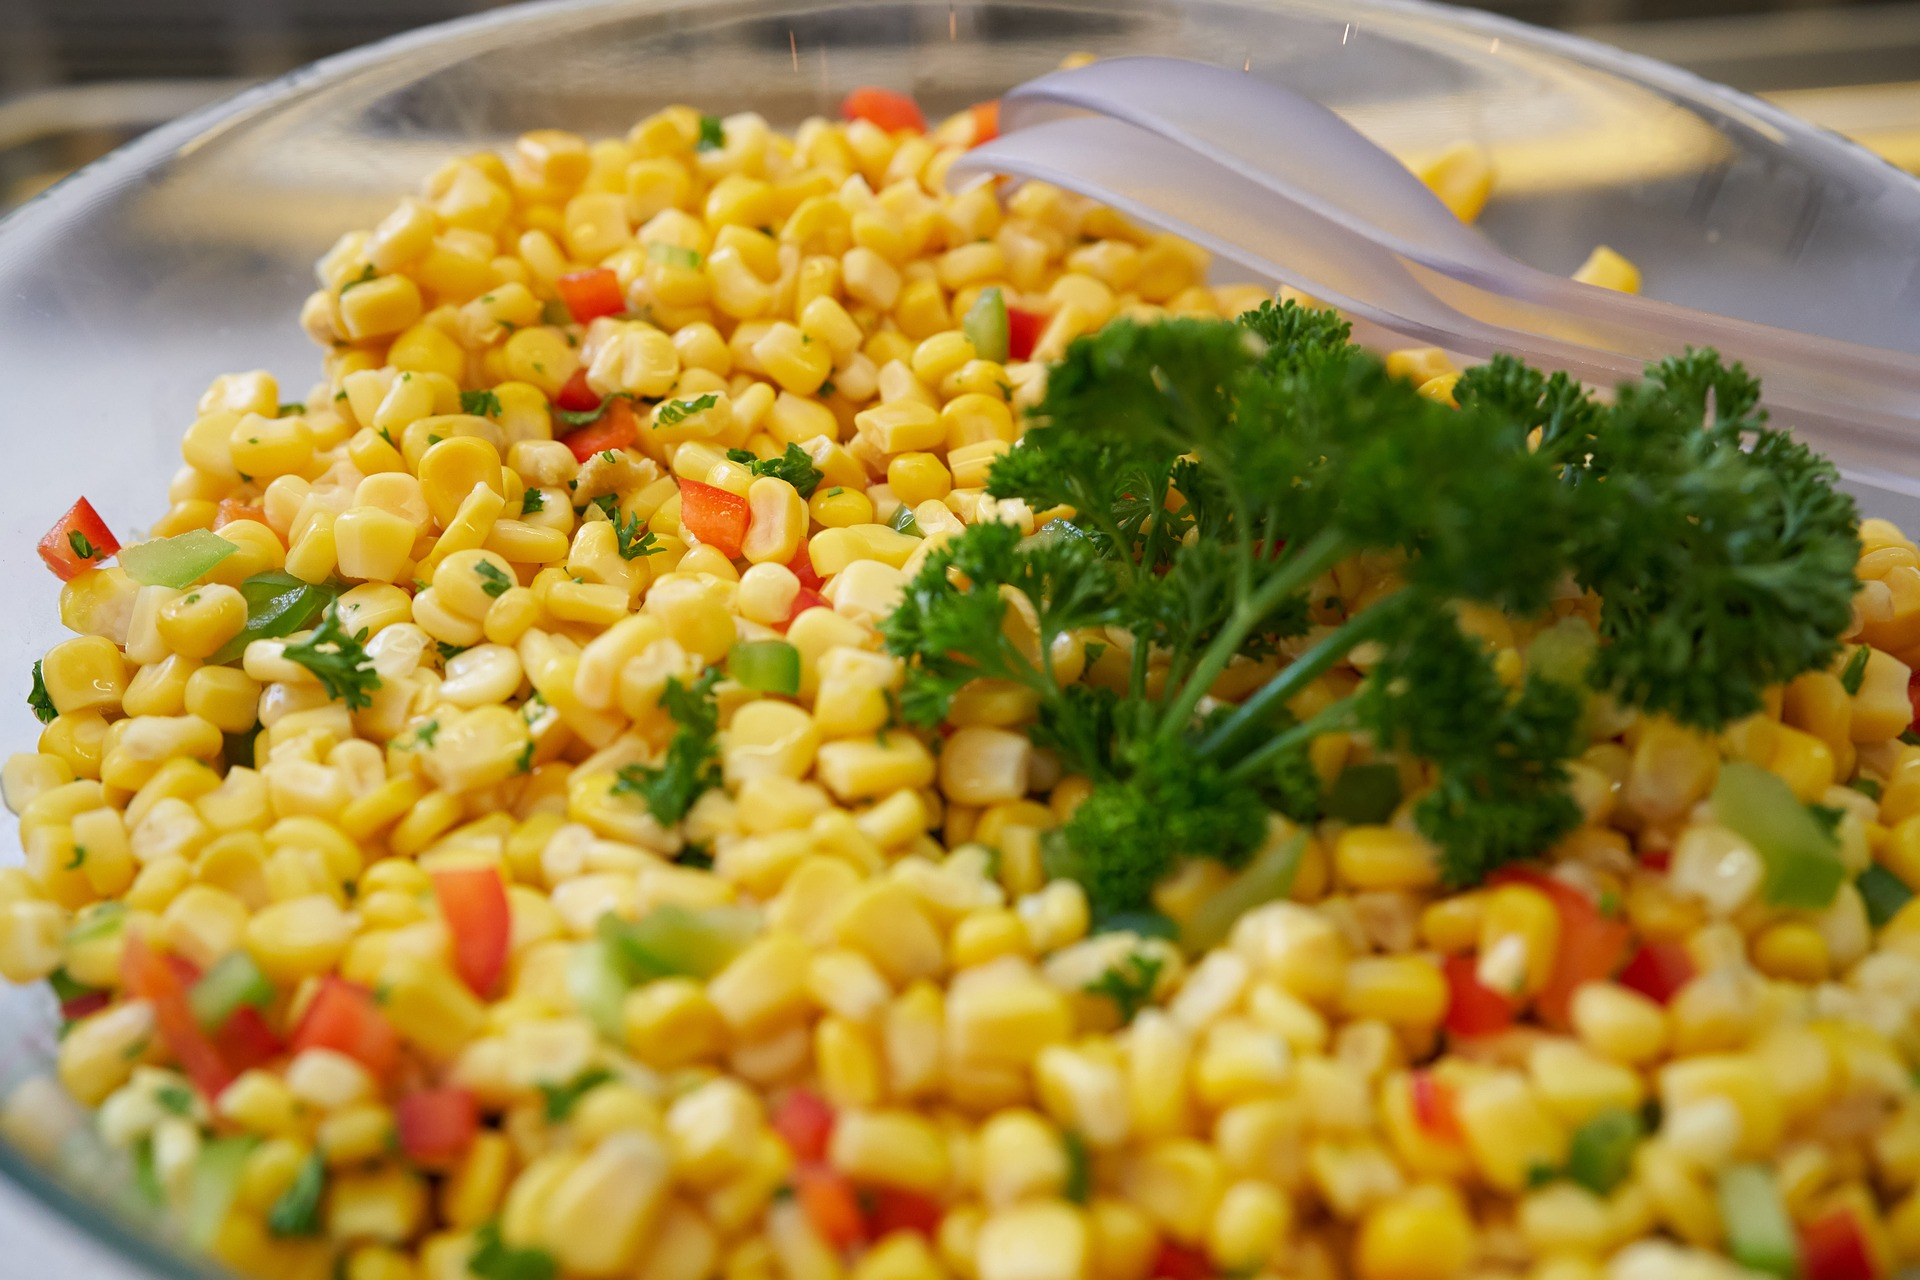 picture of corn salad